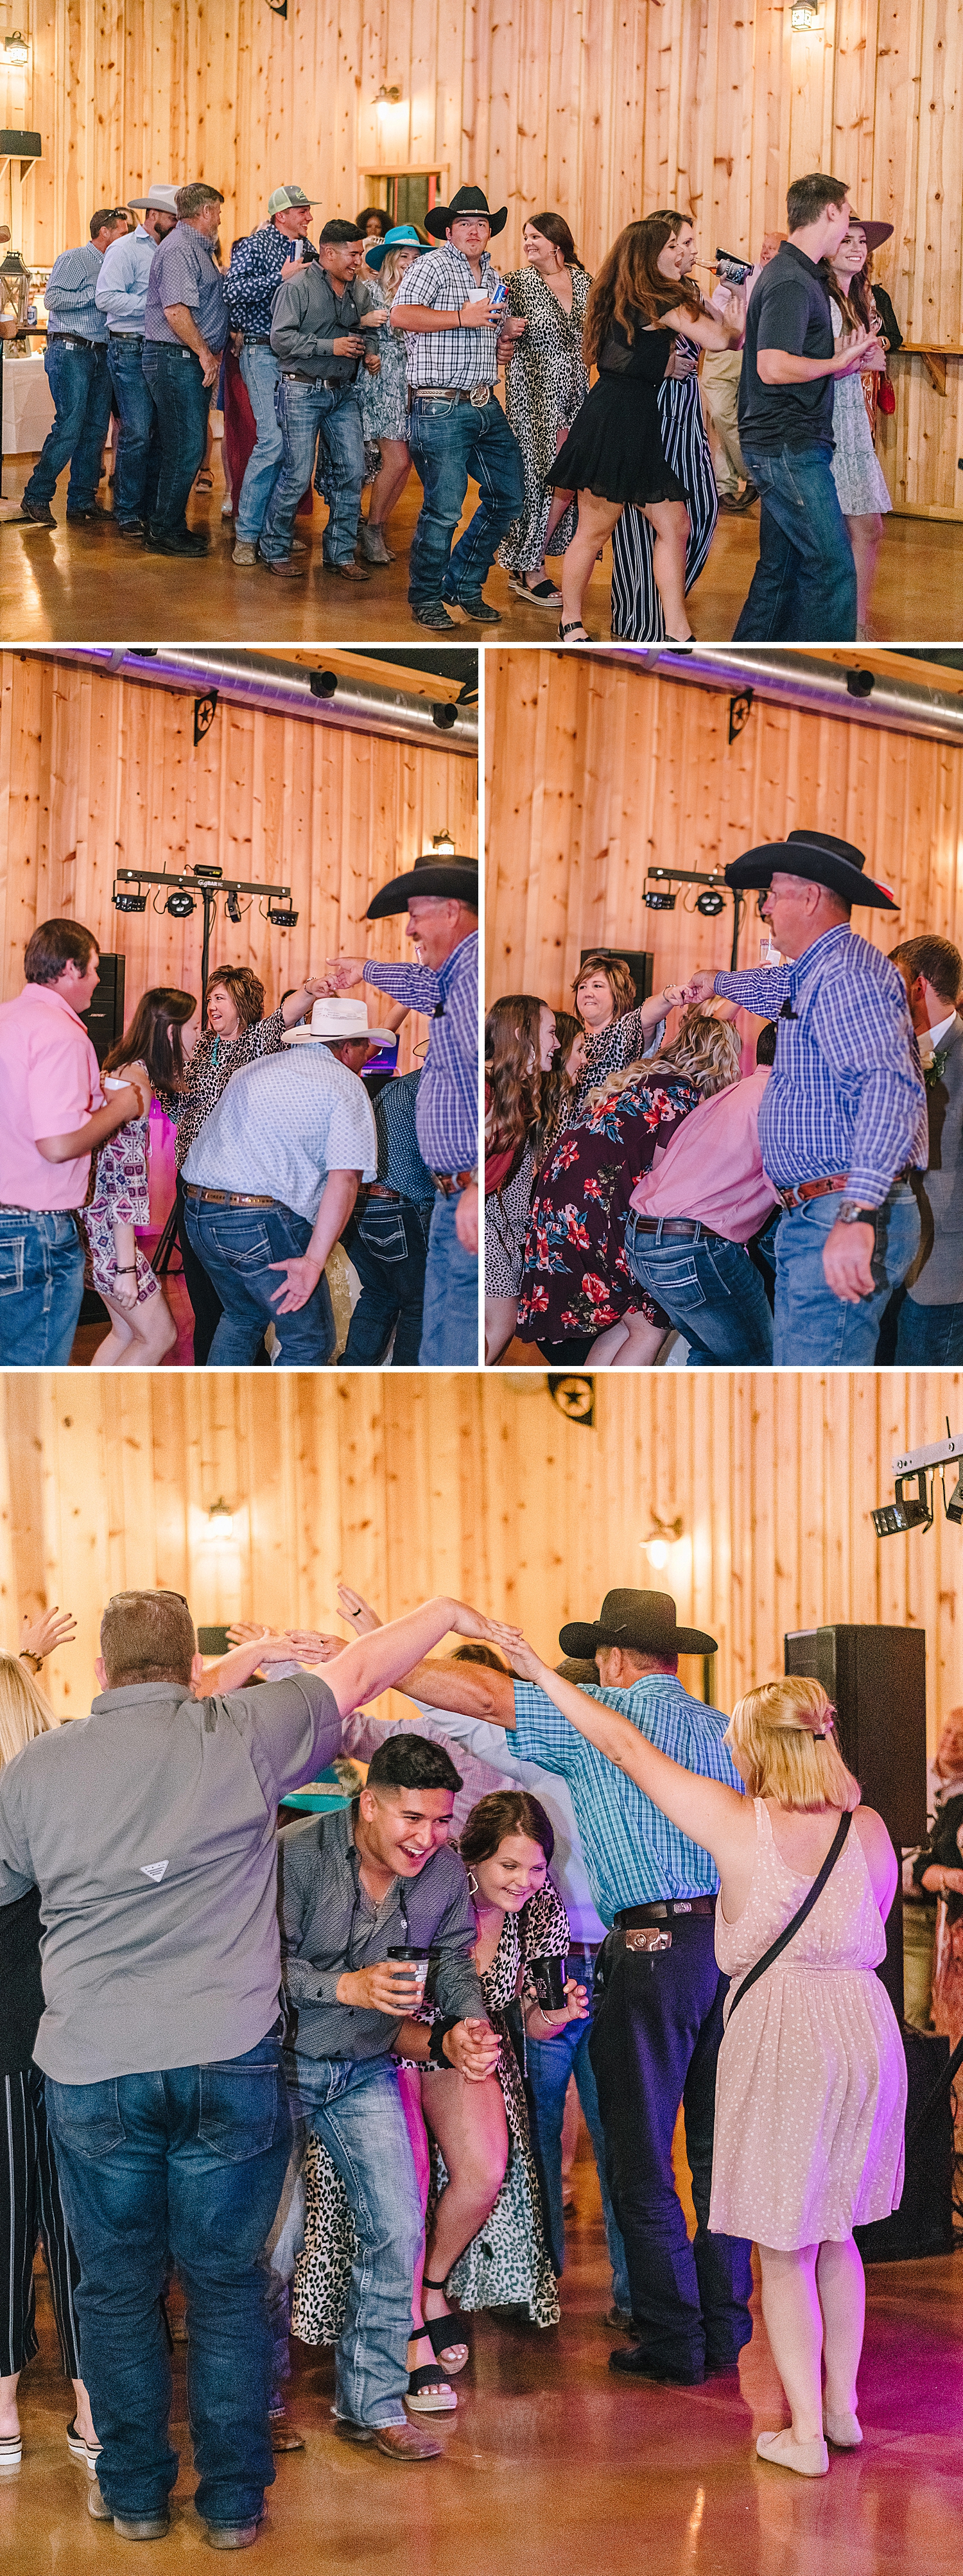 Rackler-Ranch-LaVernia-Texas-Wedding-Carly-Barton-Photography_0150.jpg